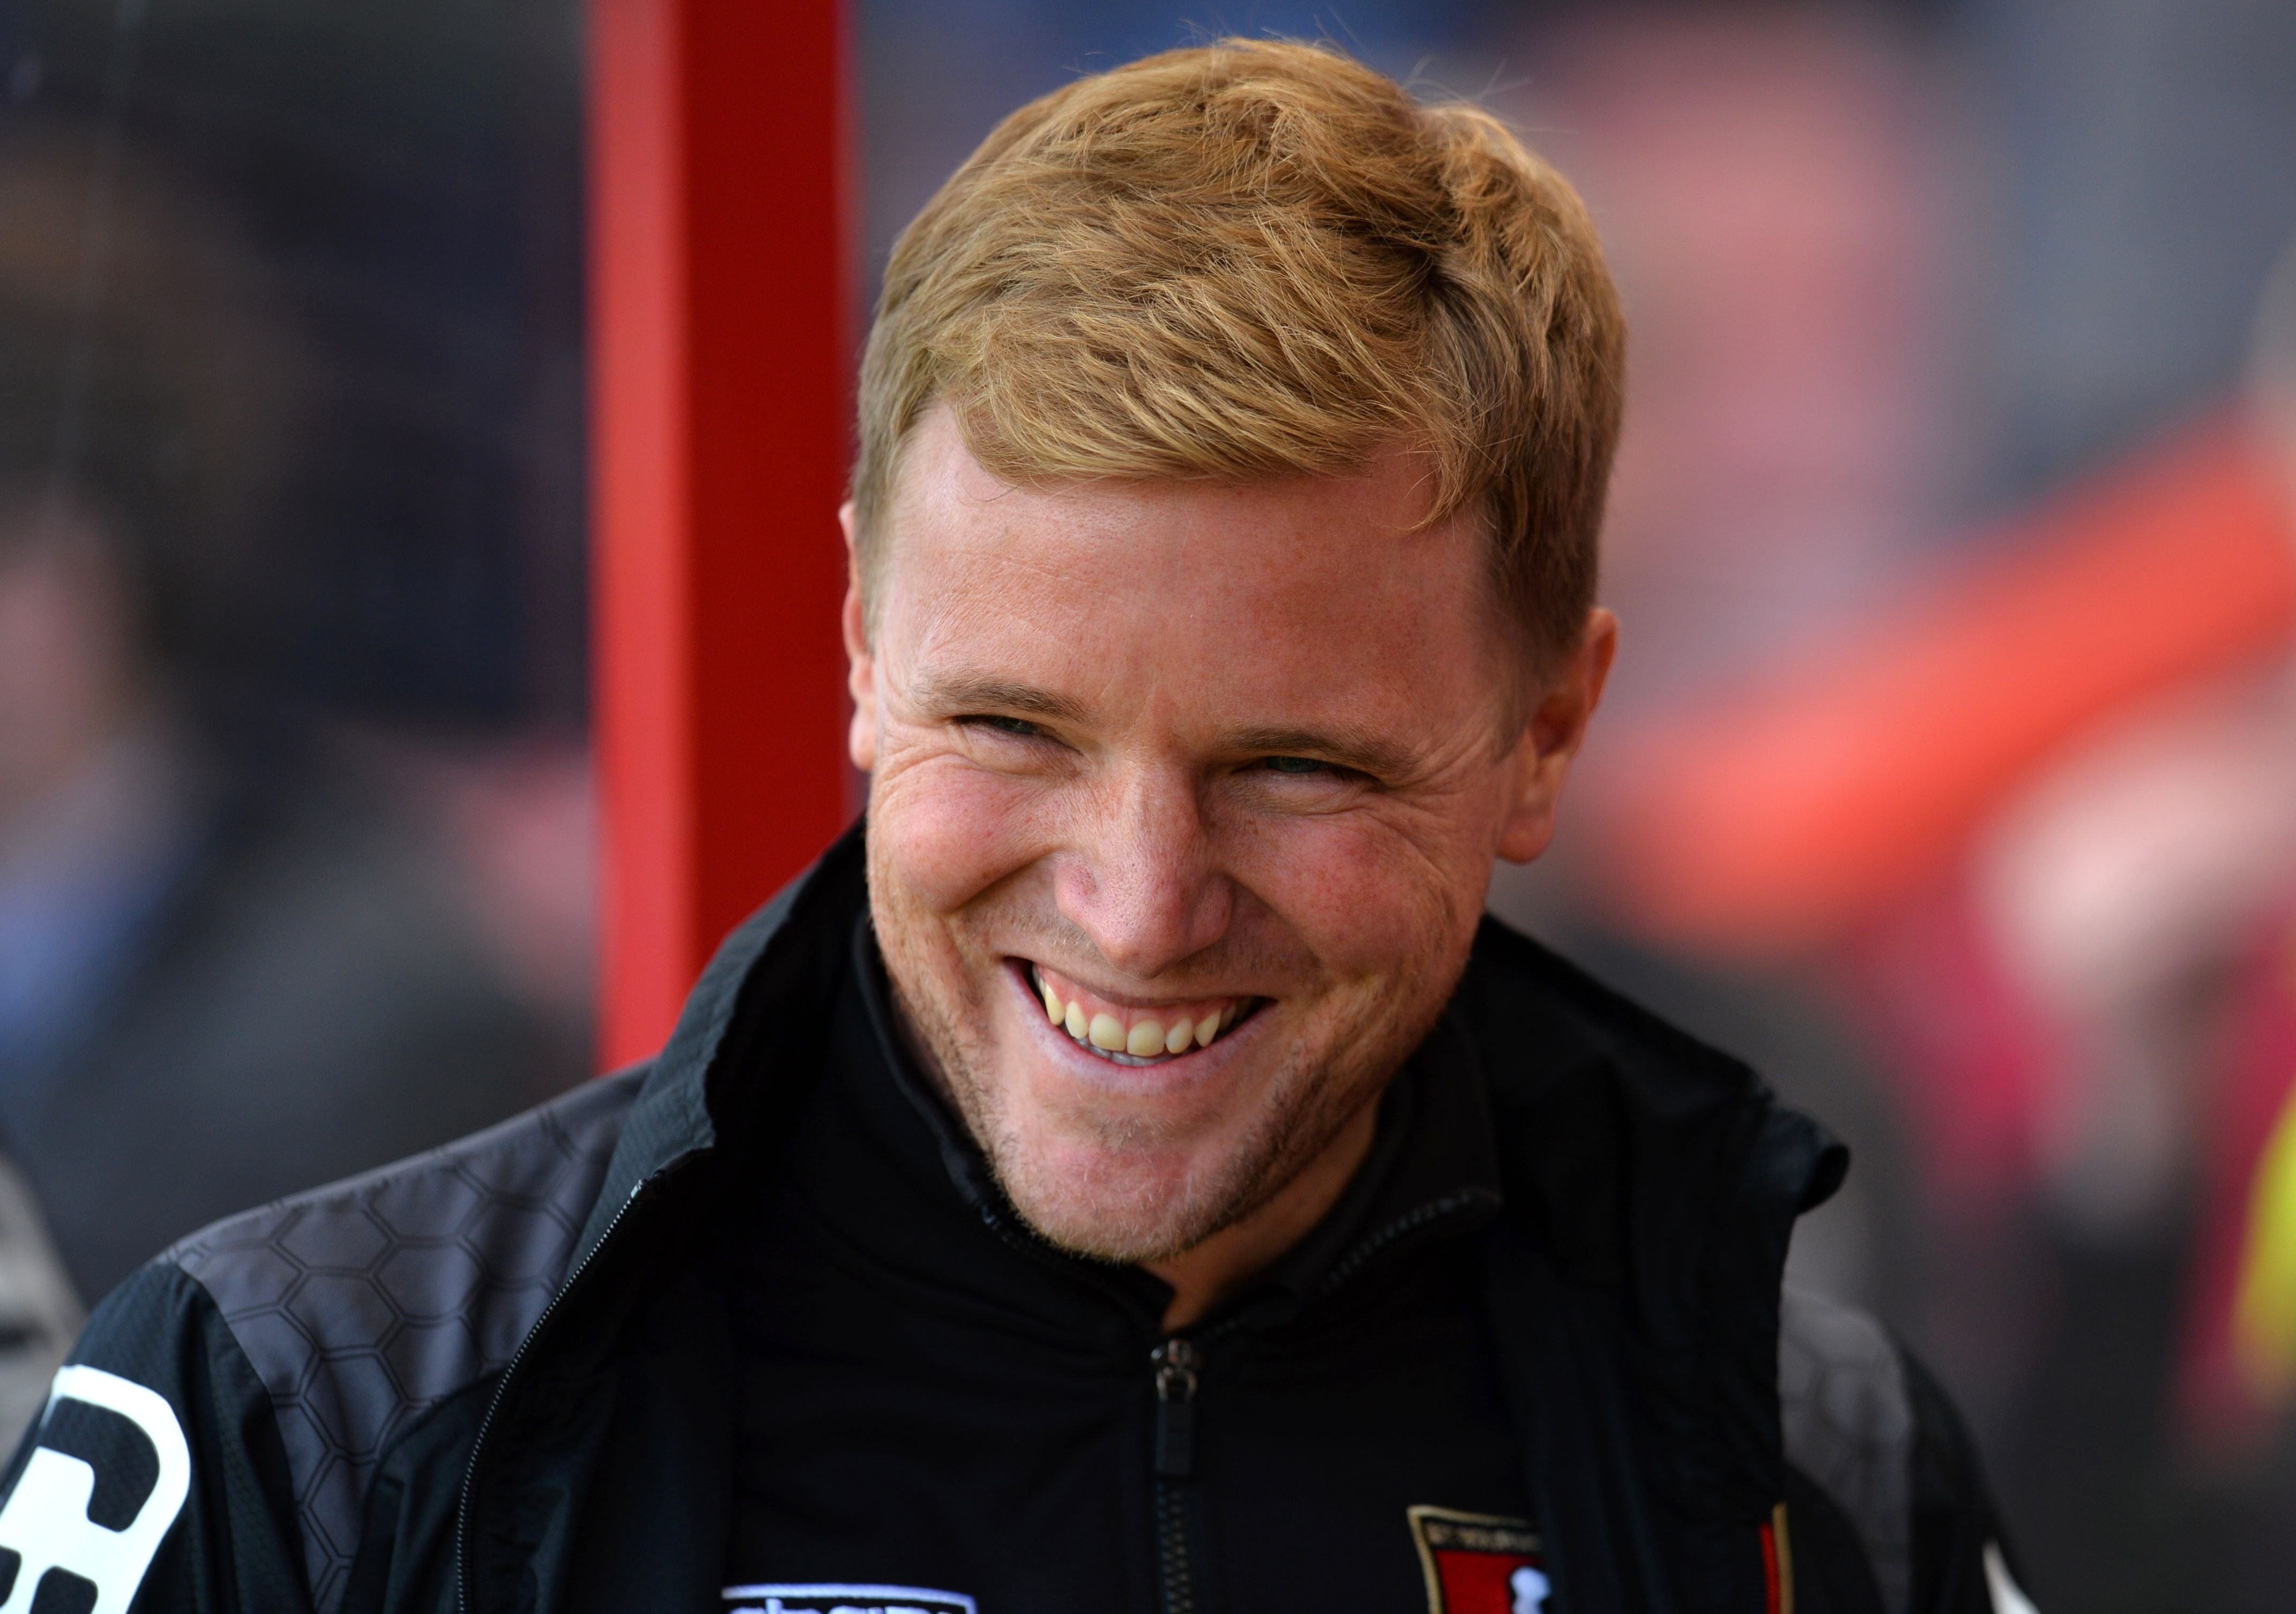 Taking the England job 'would ruin' Eddie Howe, says Chris Sutton